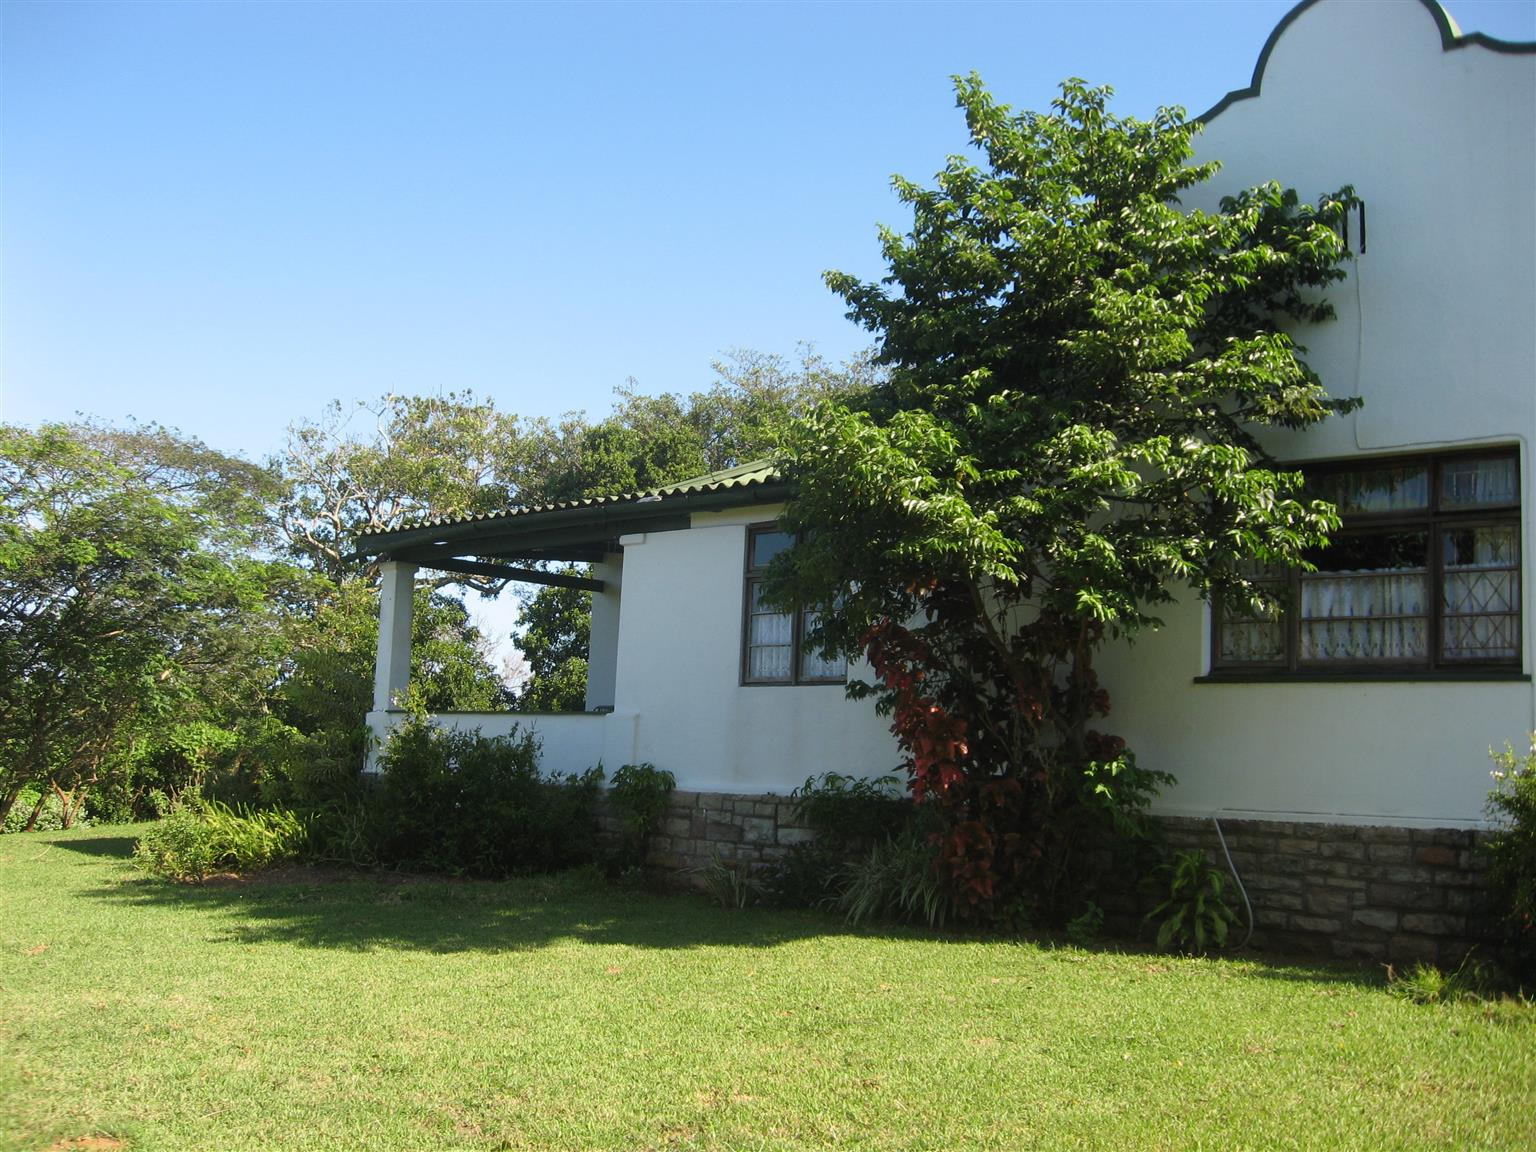 UMTENTWENI FULLY TENANTED 4 BEDROOM CHARACTER DUTCH GABLE HOUSE + 1 BEDROOM COTTAGE R990,000